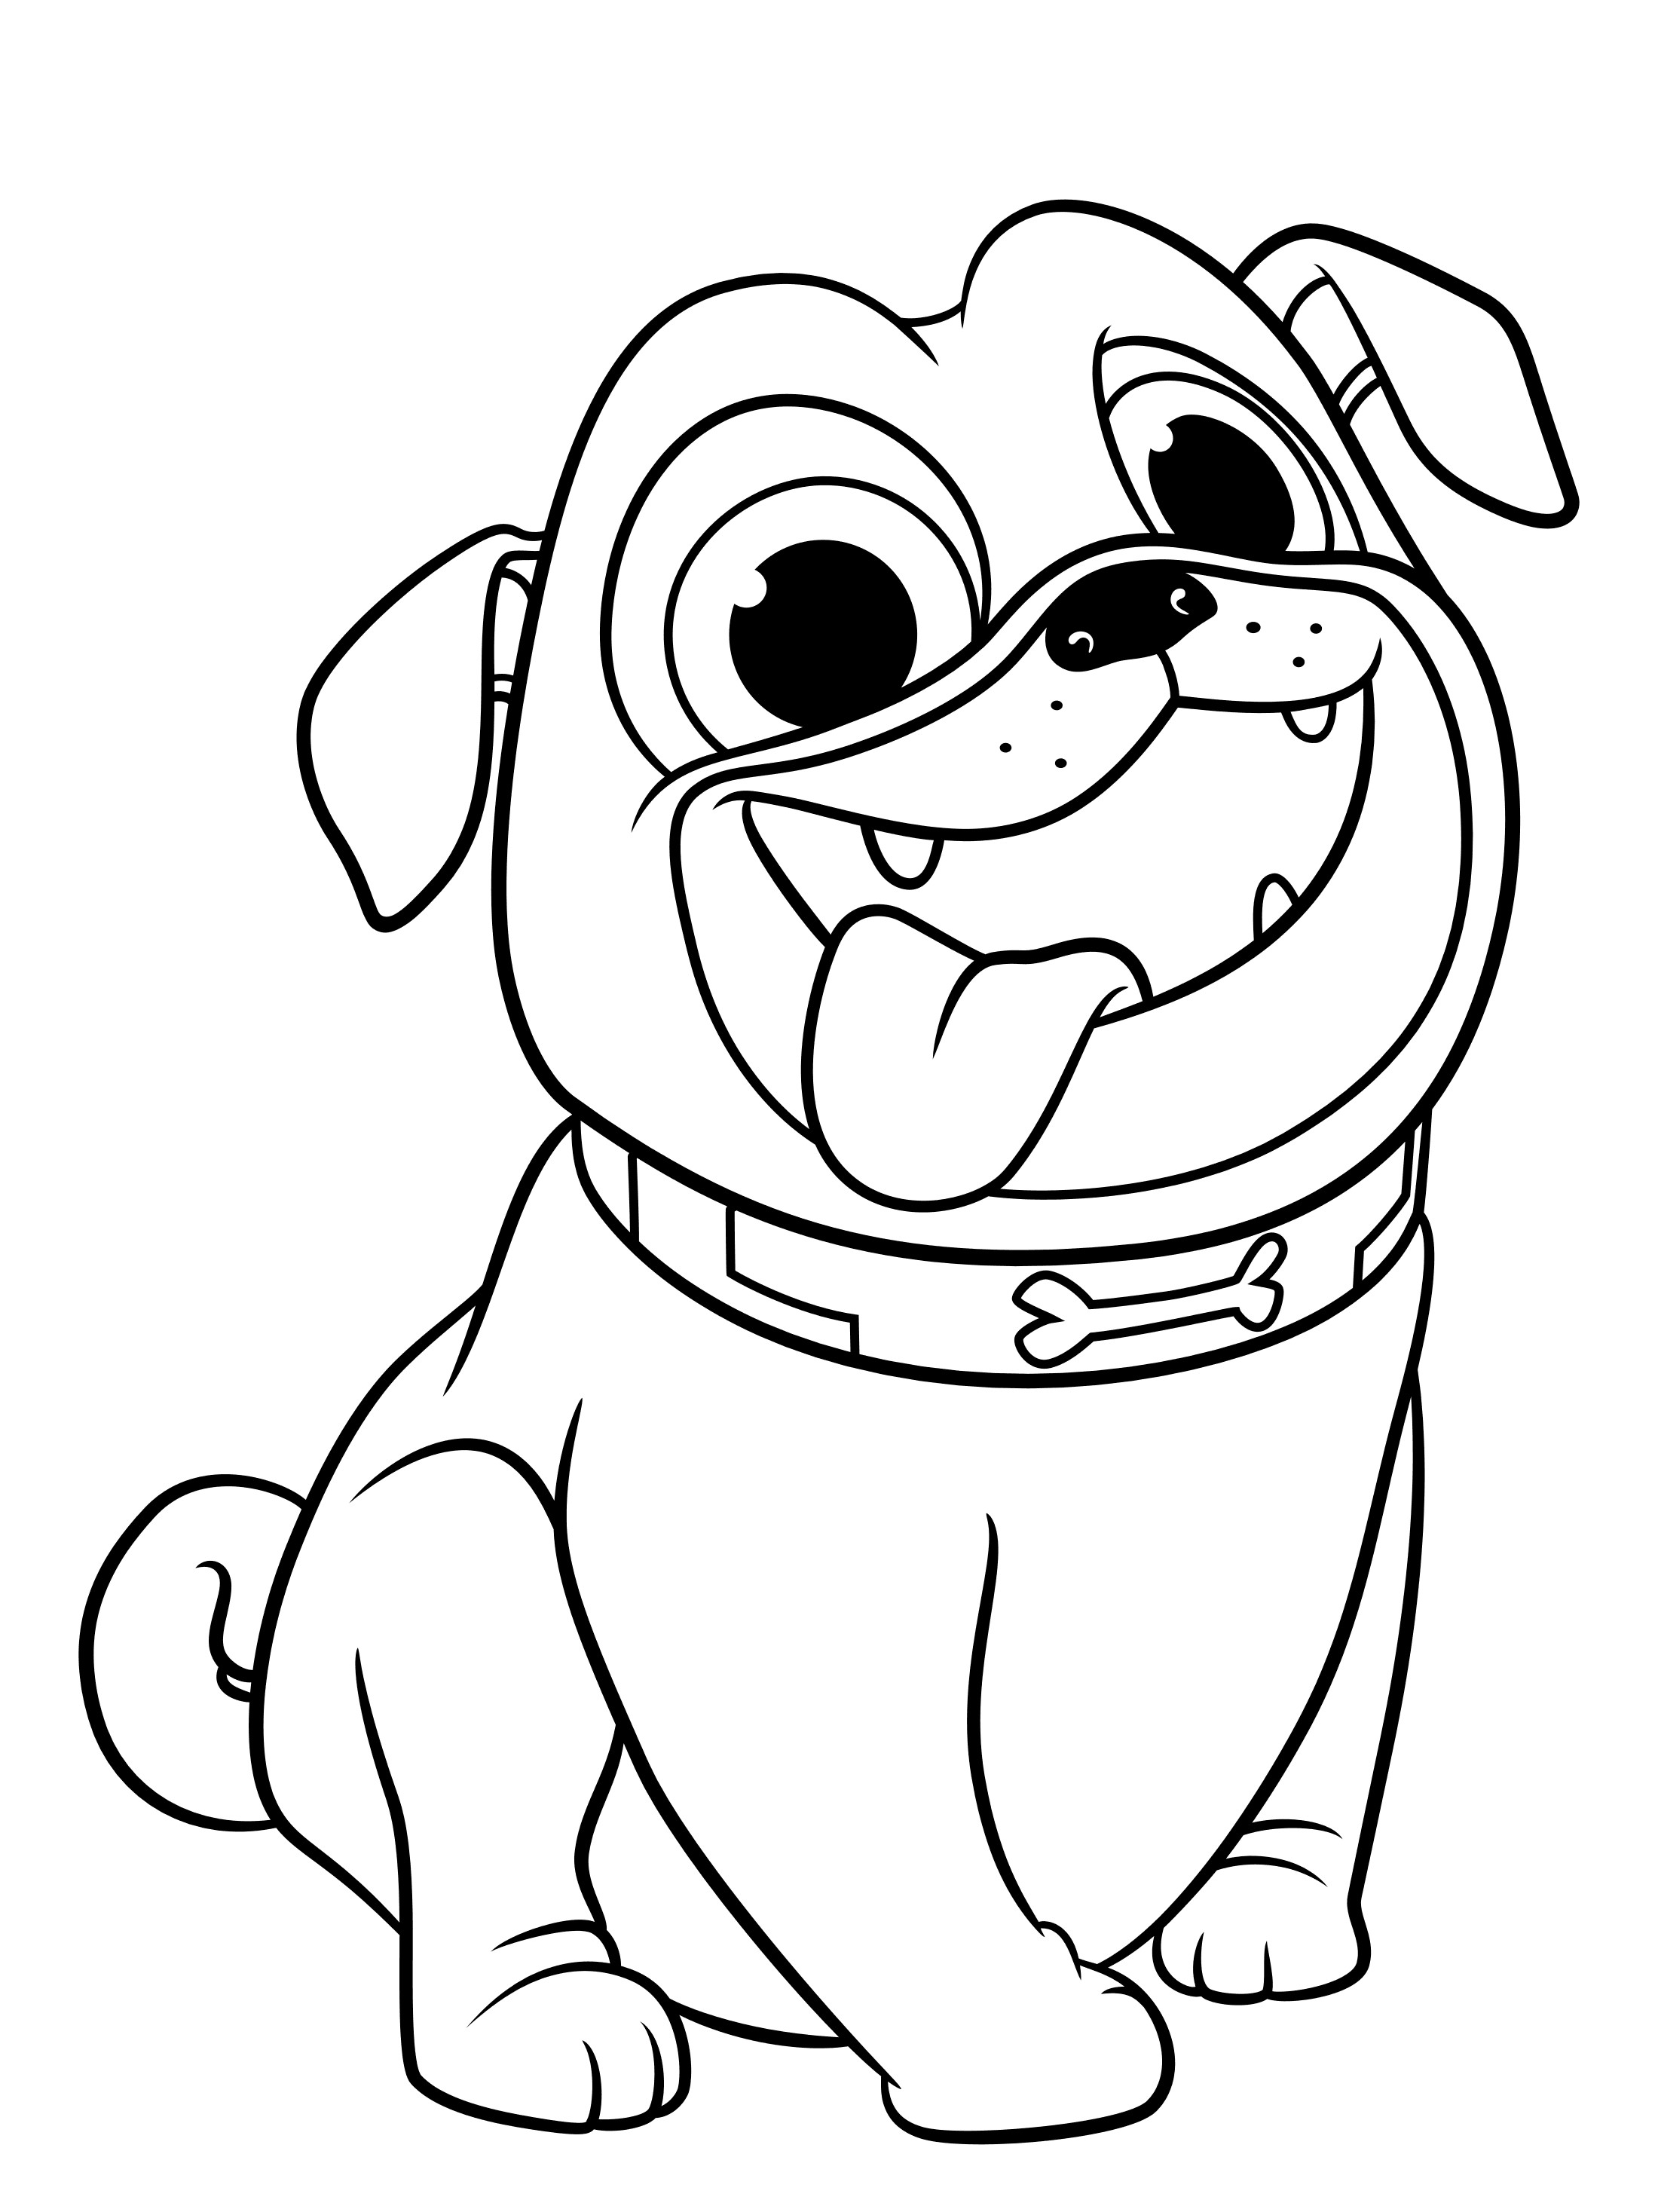 pets coloring pages disney pets coloring pages for kids free printable disney coloring pages pets